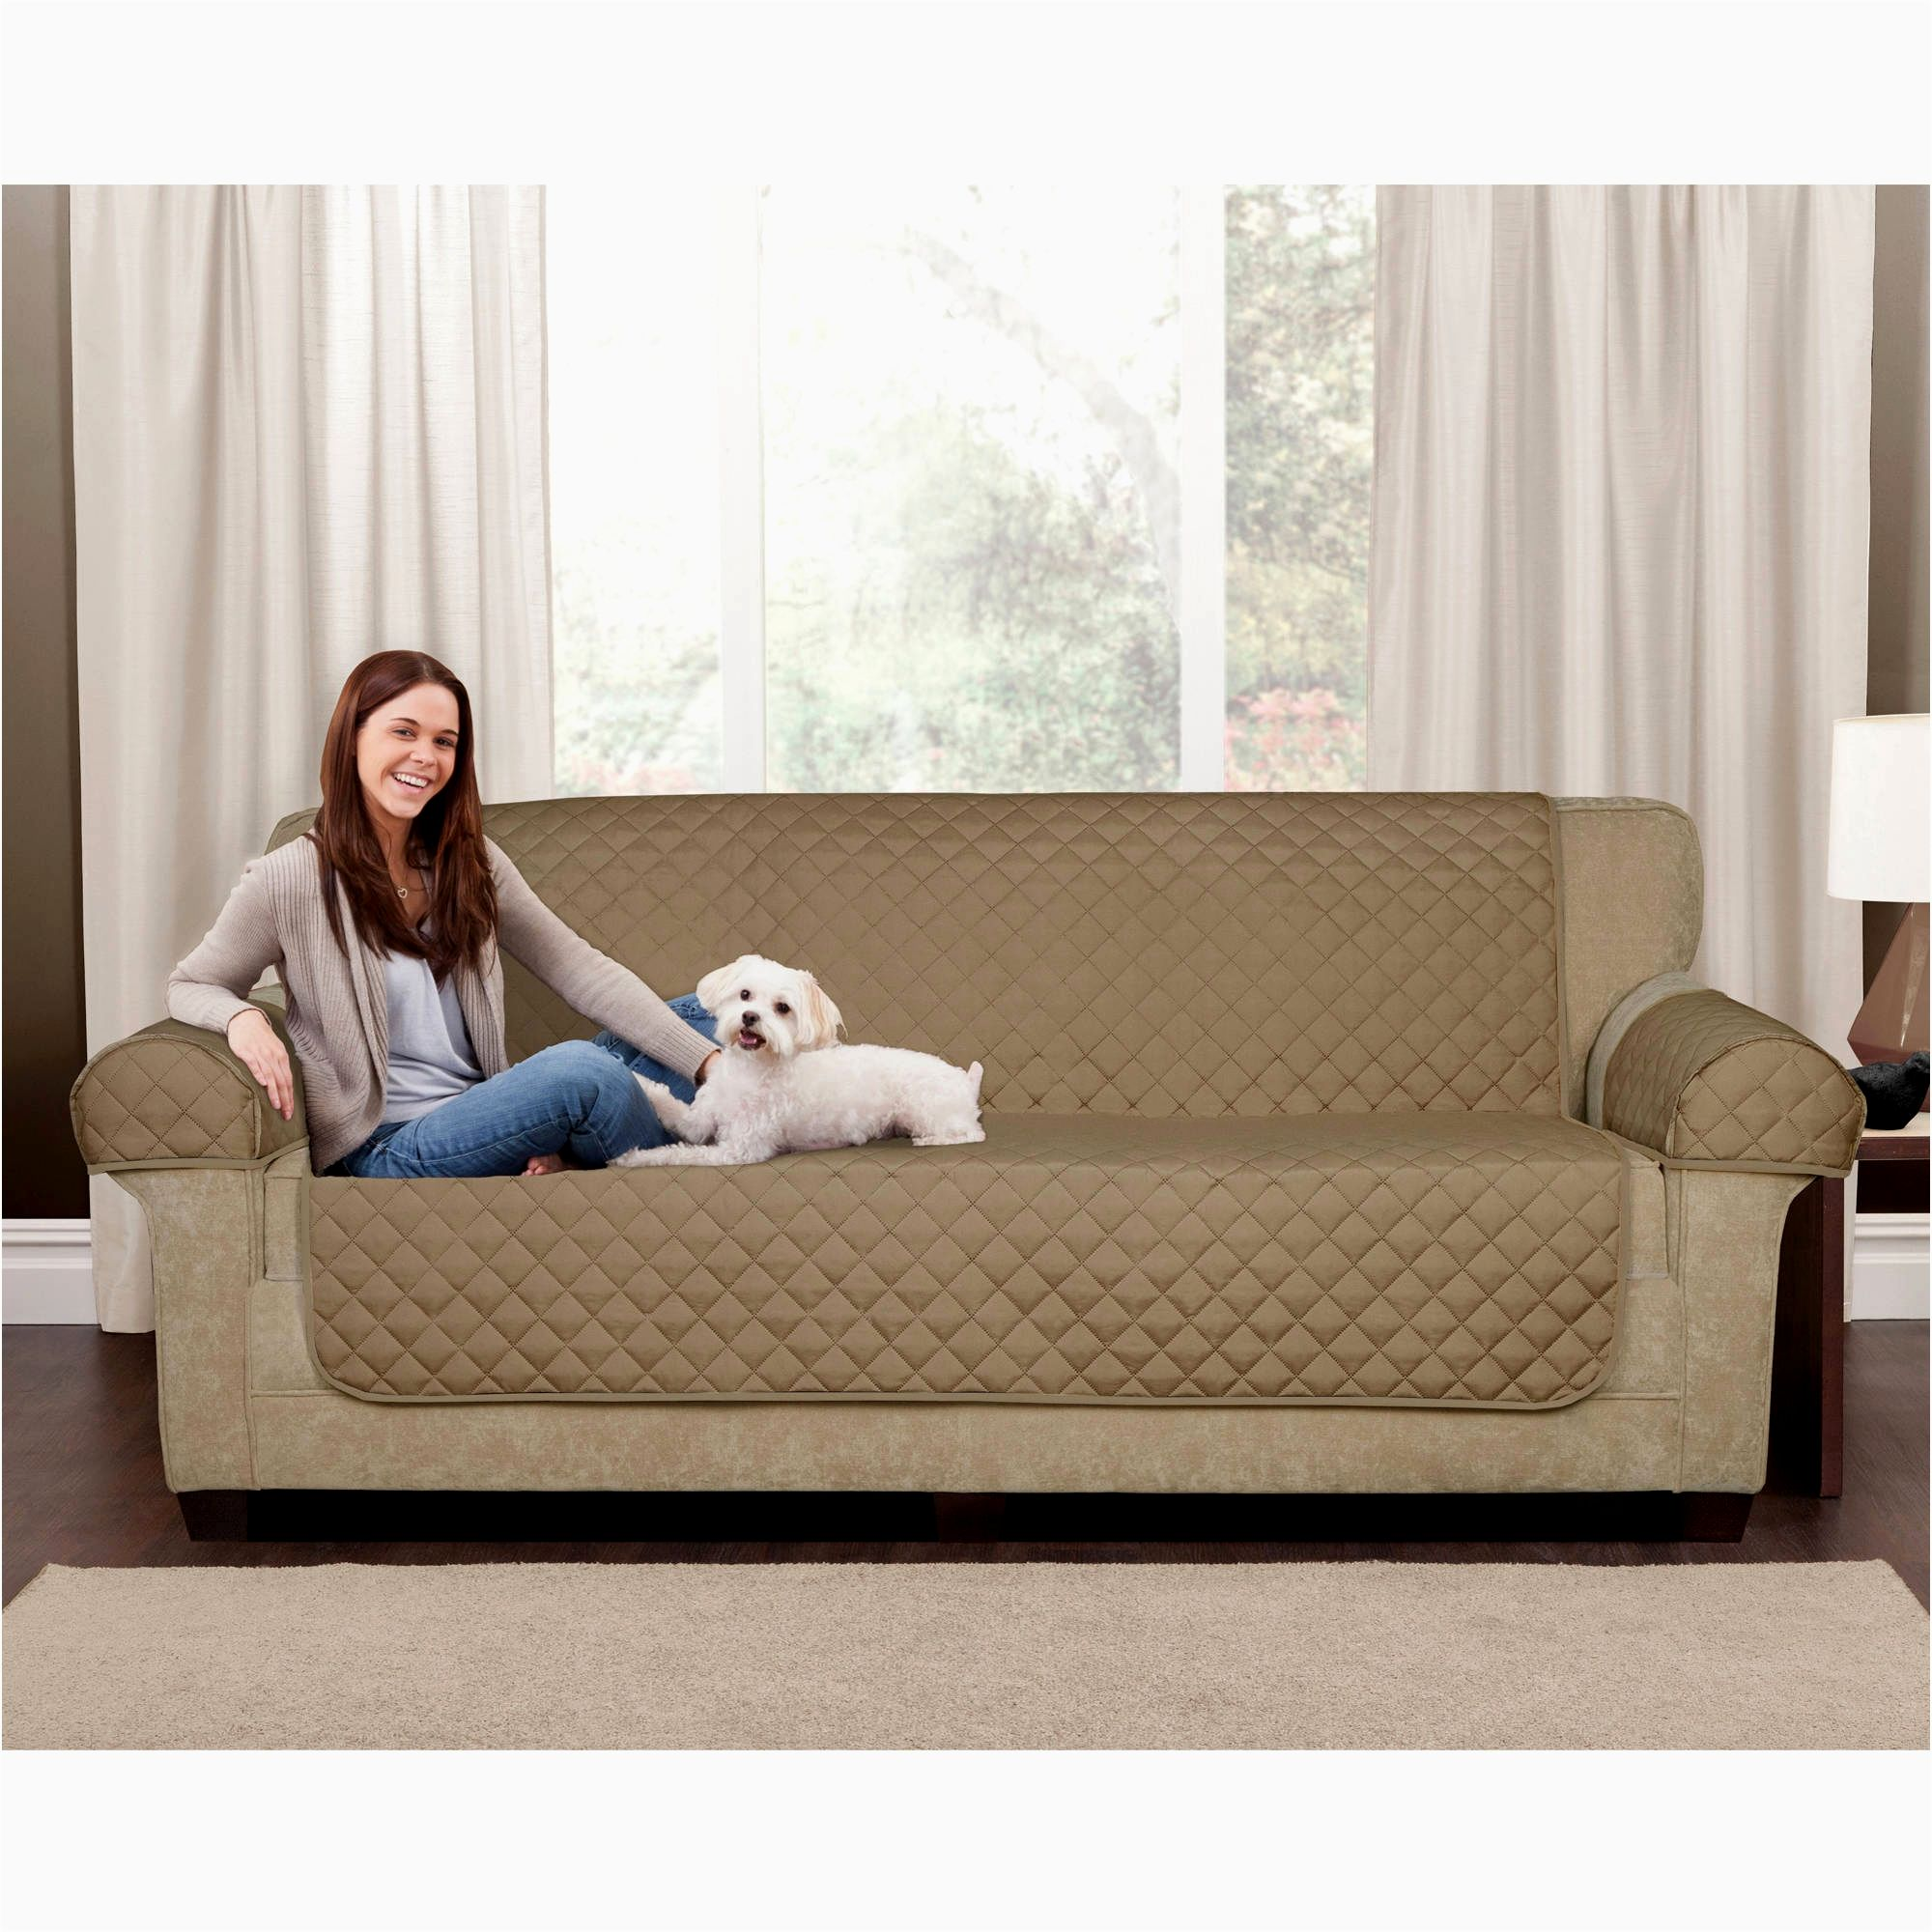 lovely sofa dog bed photograph-Wonderful sofa Dog Bed Online